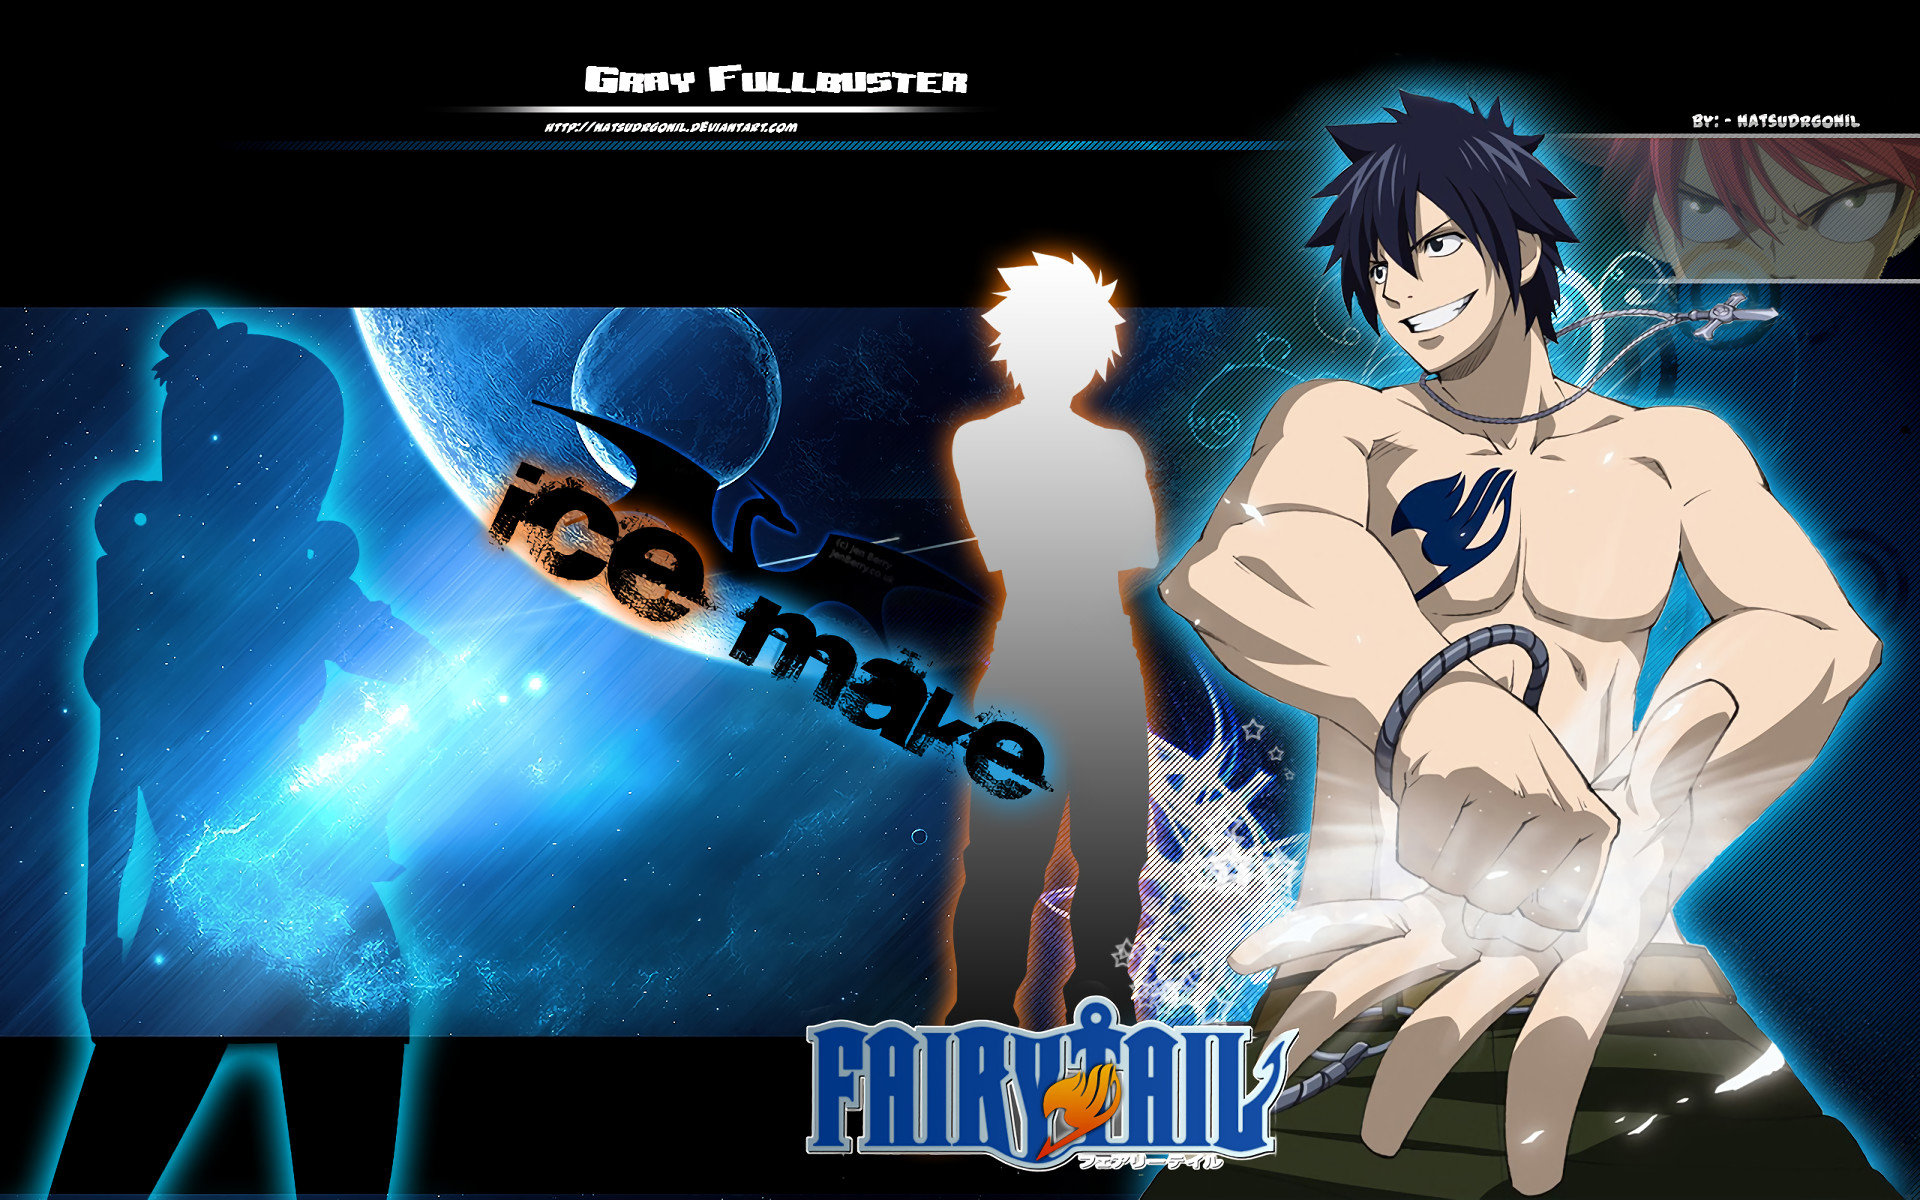 Download hd 1920x1200 Gray Fullbuster PC wallpaper ID:41418 for free